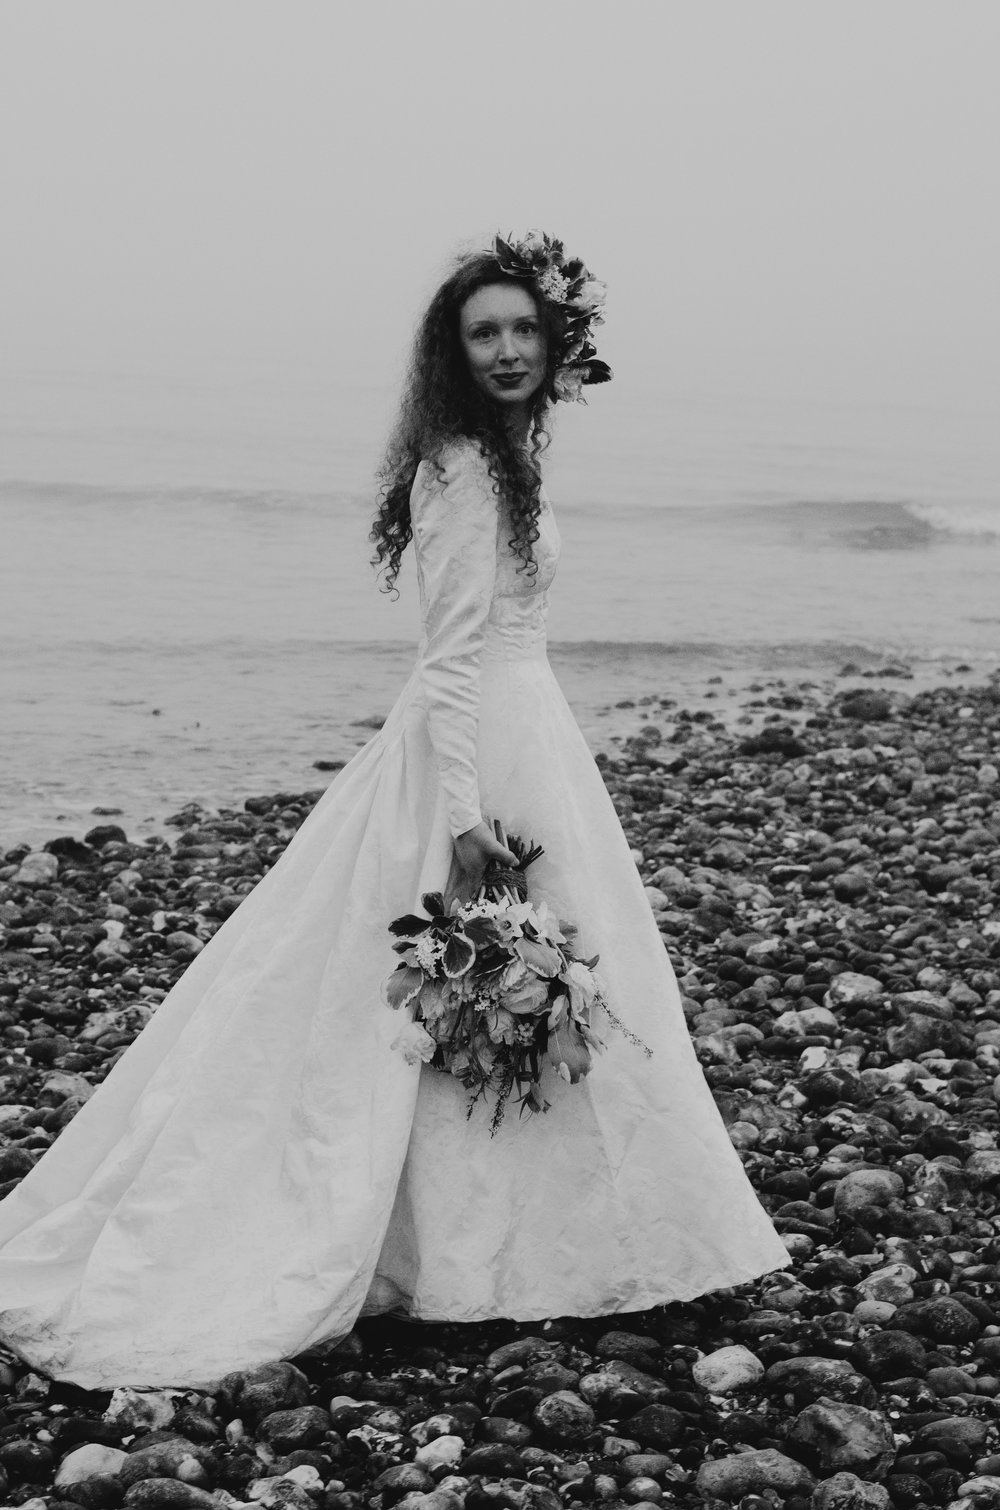 Bridal - Cuckmere Haven 2018 - Aiste Saulyte Photography-152.jpg